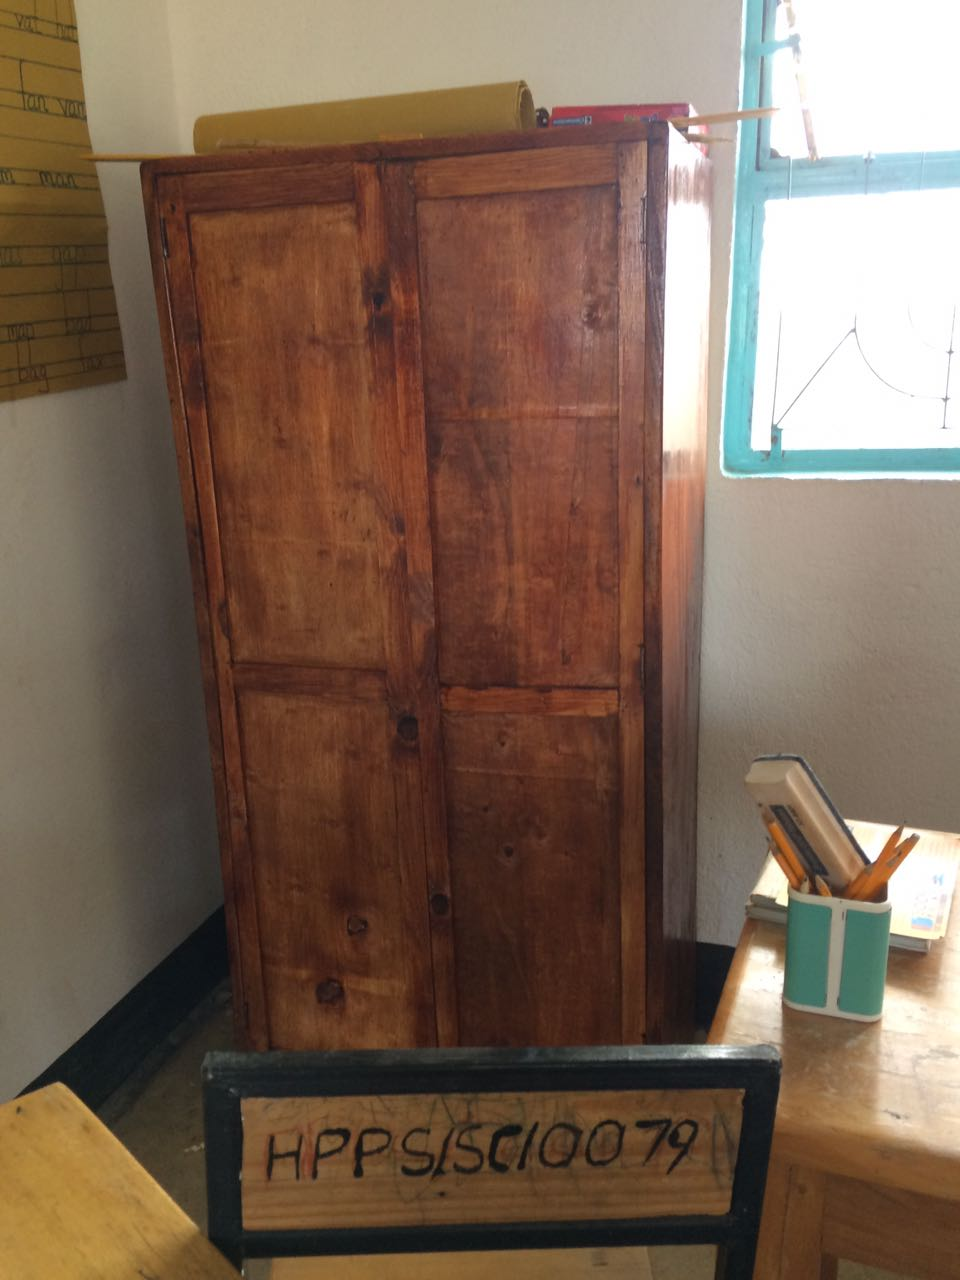 We released a grant to purchase teachers' desks, classroom supplies and lock closets (like the one pictured above) for each of the classrooms to protect all materials from theft.